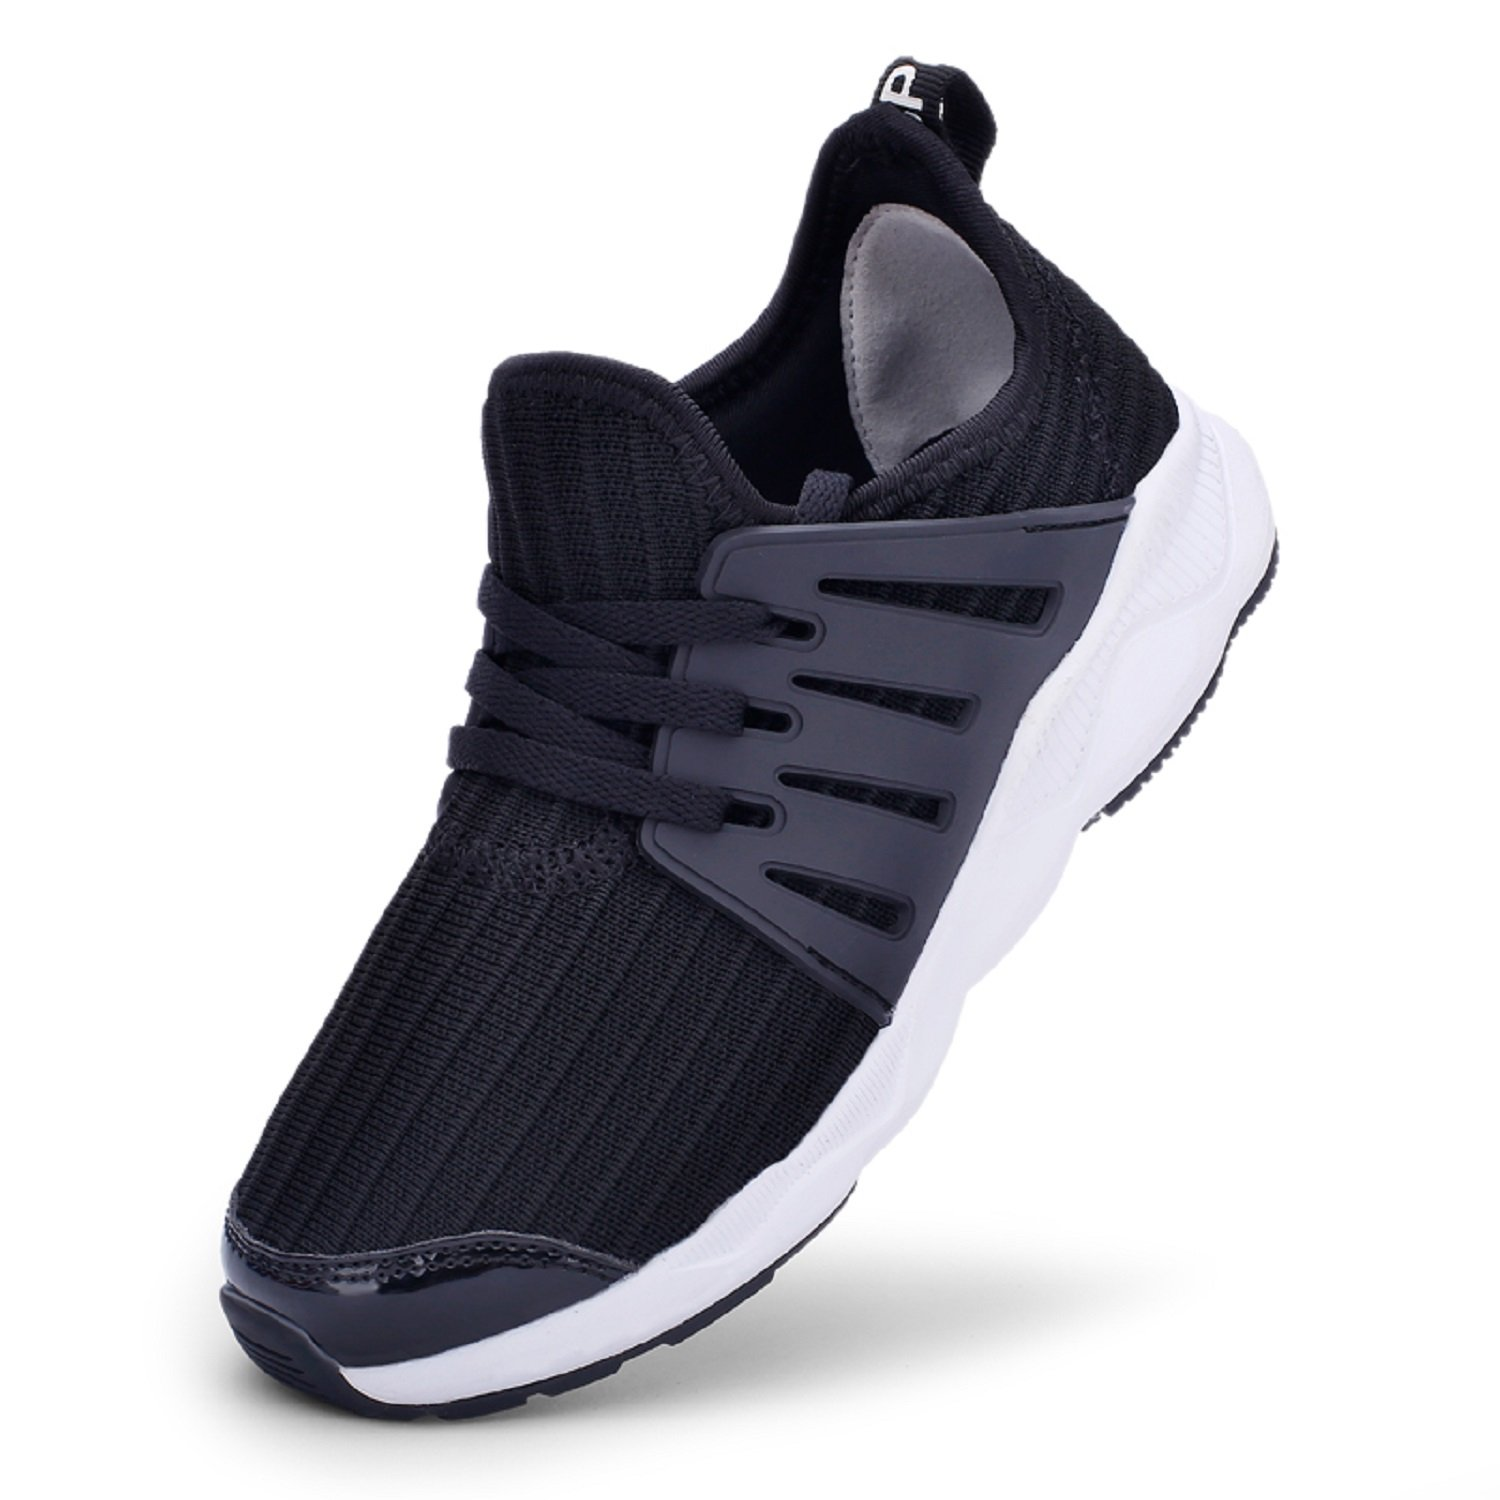 TQGOLD Kids Breathable Walking Running Shoes Boys&Girls Athletic Tennis Shoes Casual Outdoor Trainers(Size 38,Black)